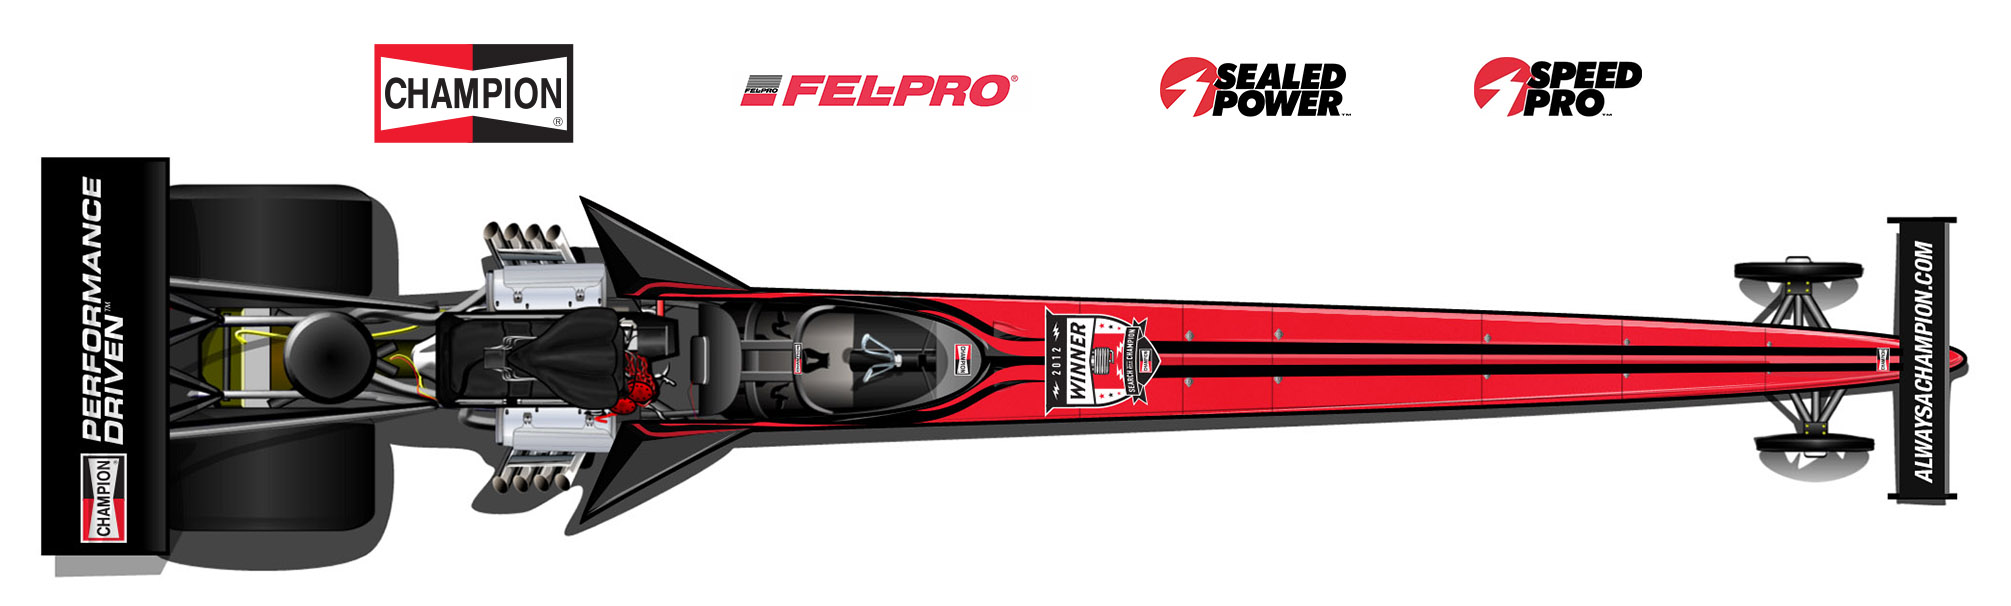 In addition to Champion Spark Plugs, the MBR A/fuel dragster will proudly feature associate signage from Federal Mogul brand partners Fel-Pro, Sealed Power, and Speed Pro.